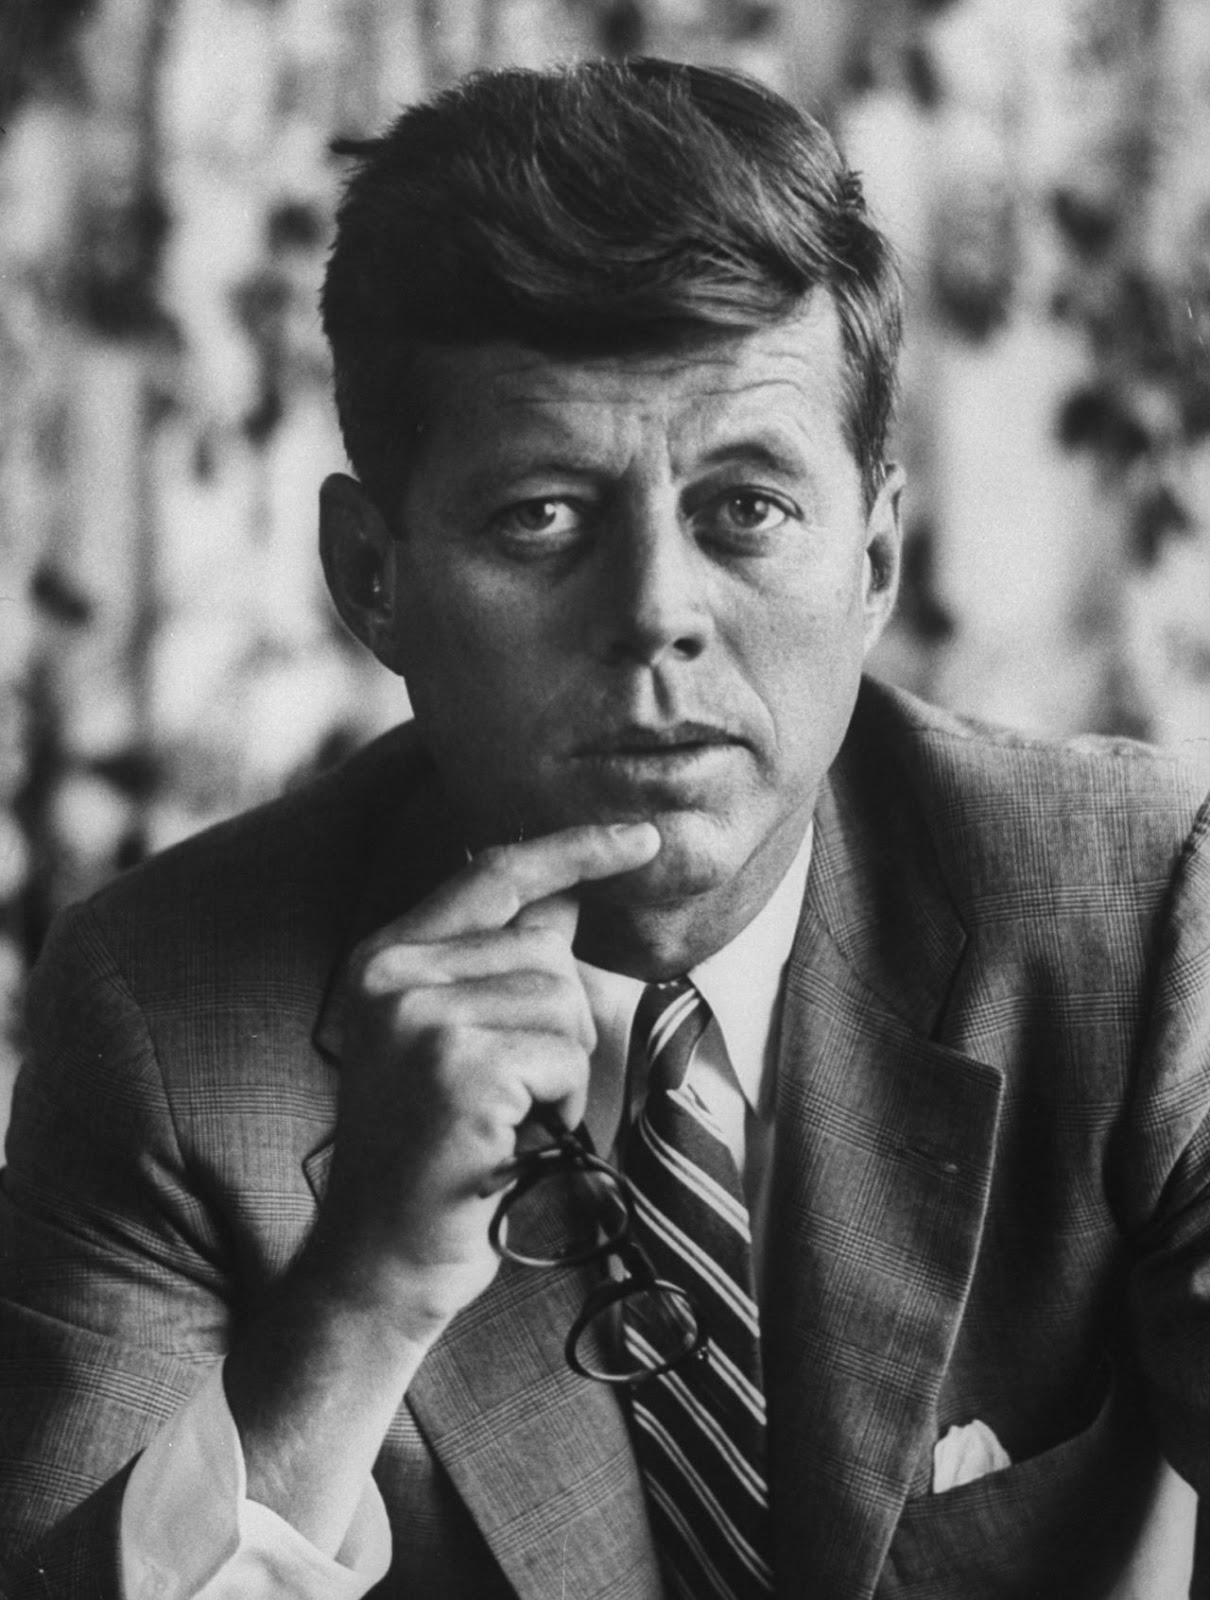 Jfk Style: CHAD'S DRYGOODS: HOW TO DRESS LIKE JFK IN 10 STEPS